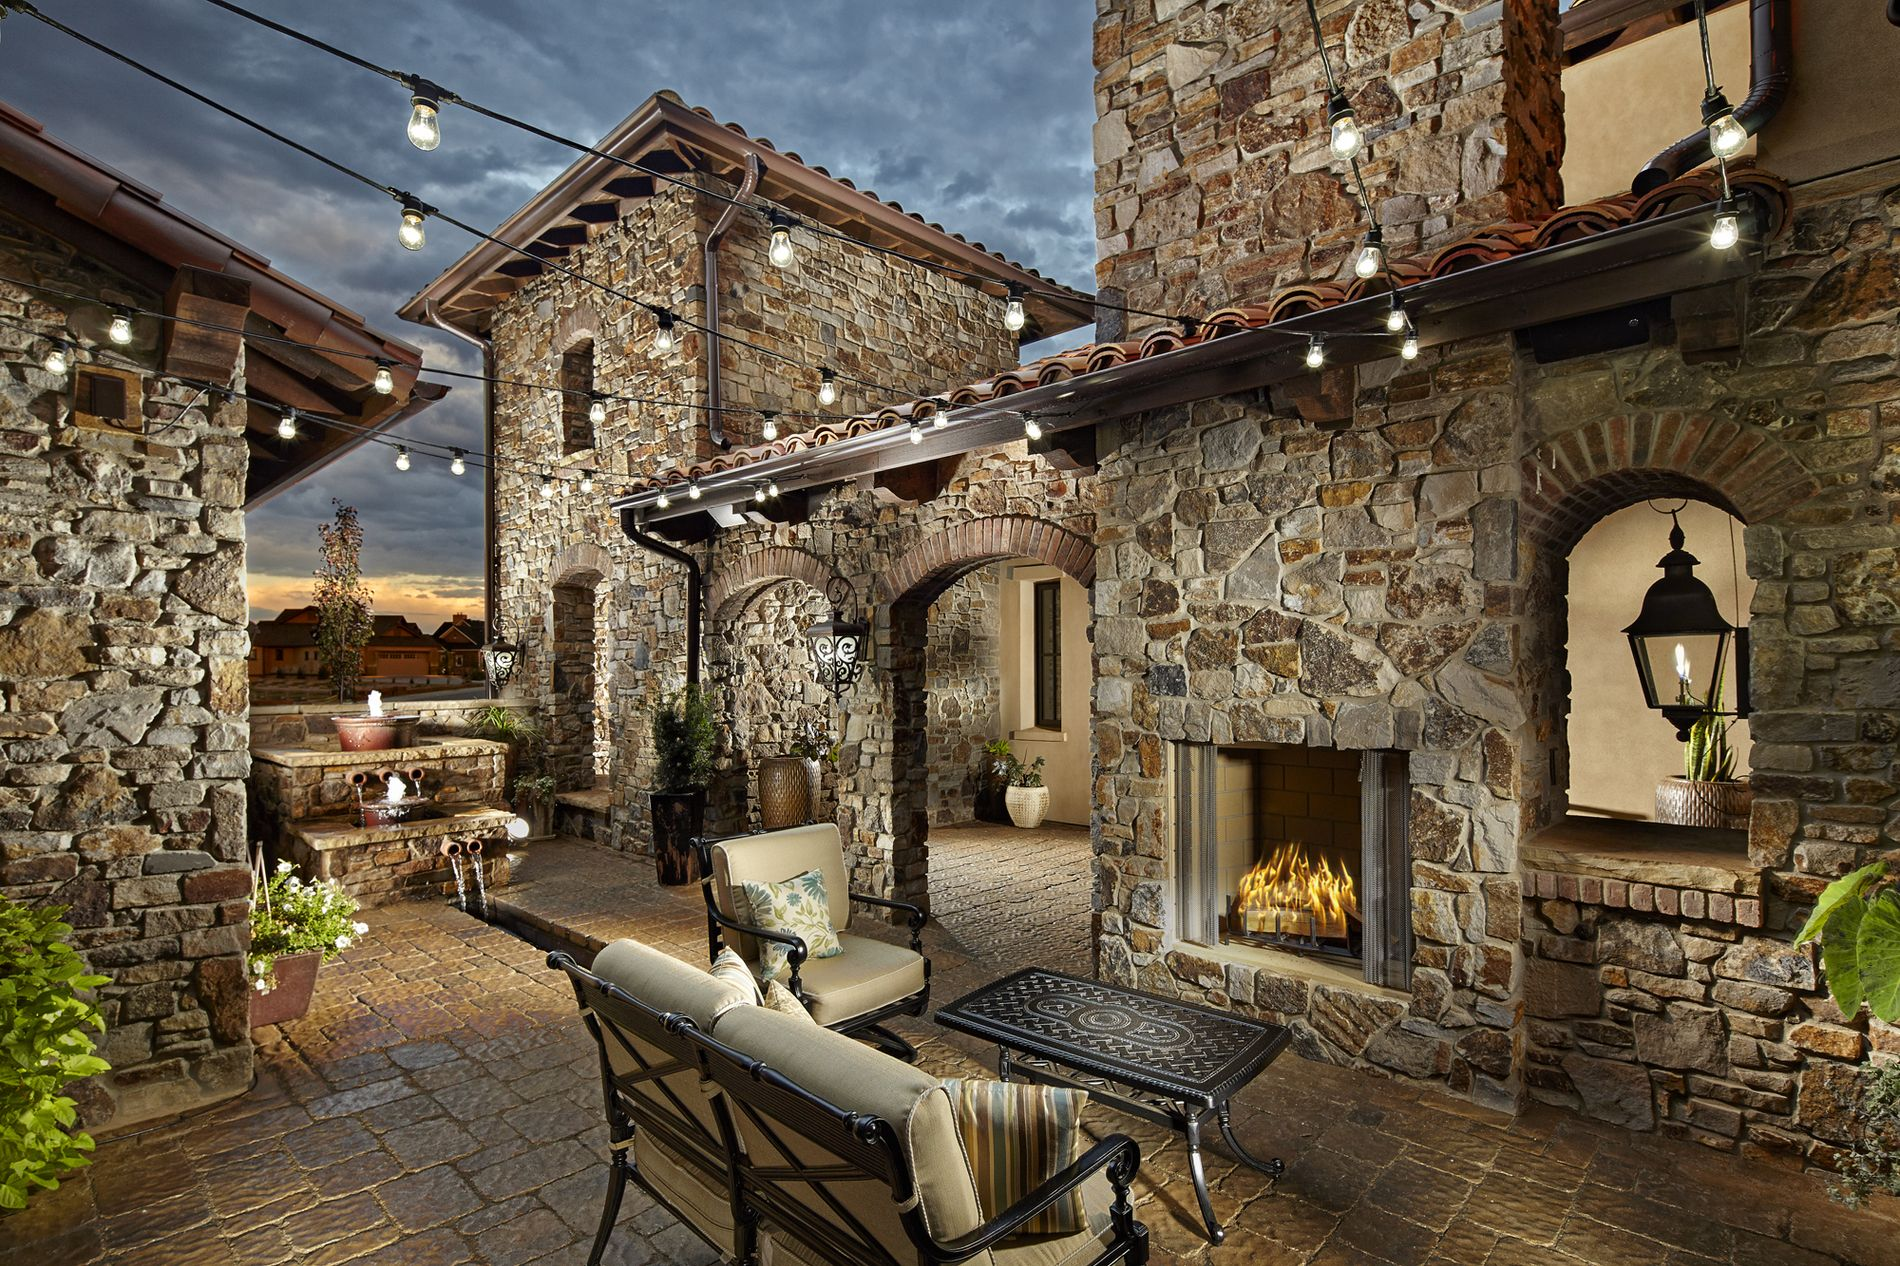 Paver Courtyard with Water Feature & Fireplace